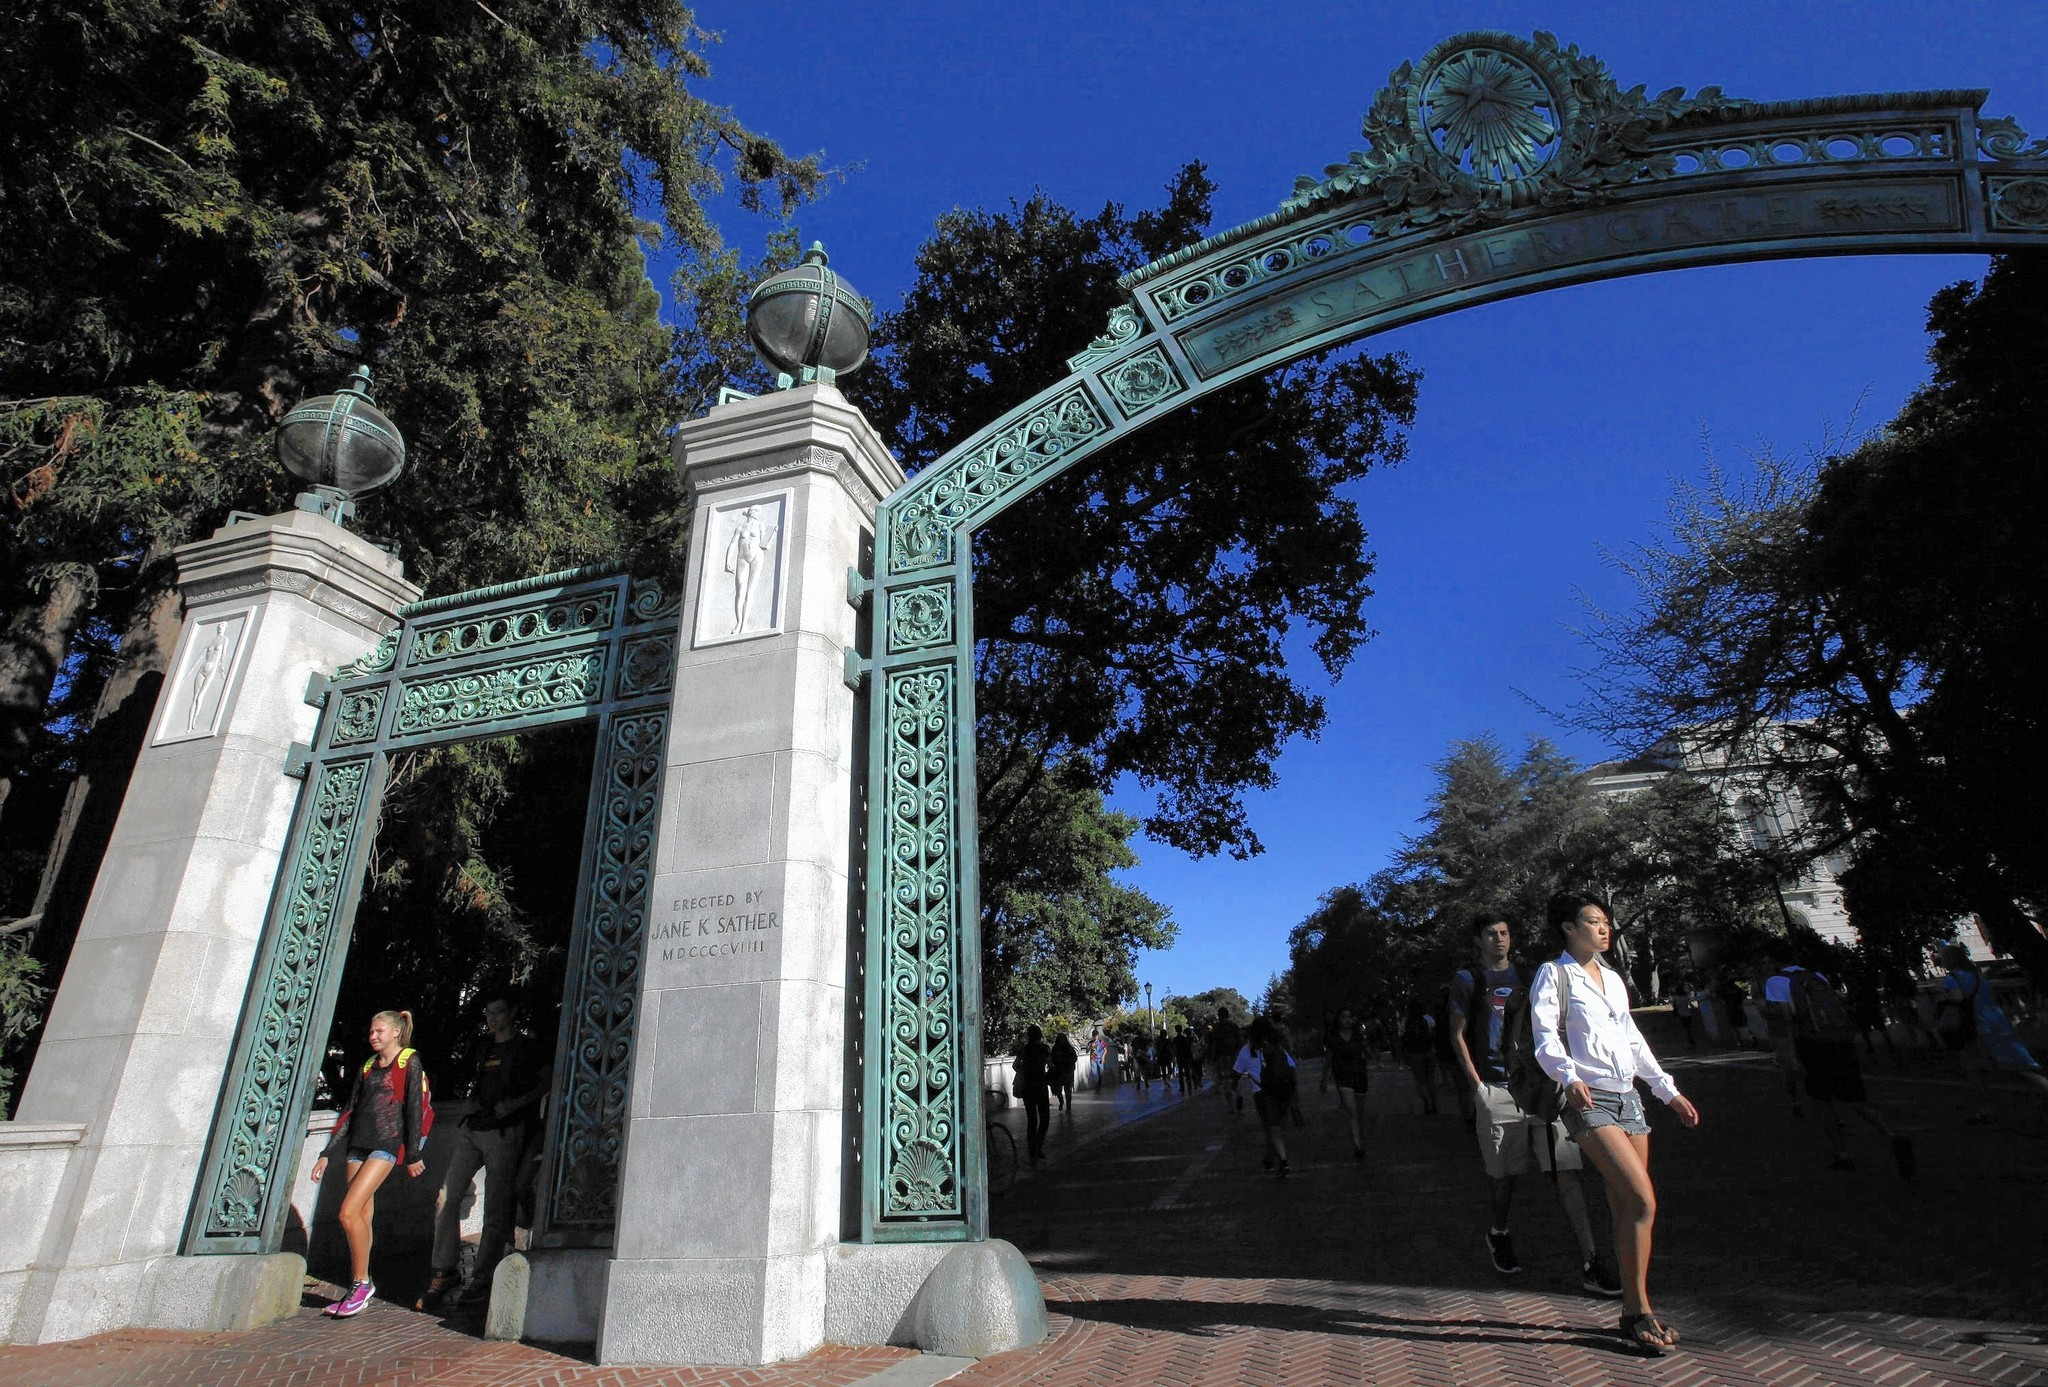 at uc berkeley  promises of a crackdown on sexual misconduct are met with skepticism by students